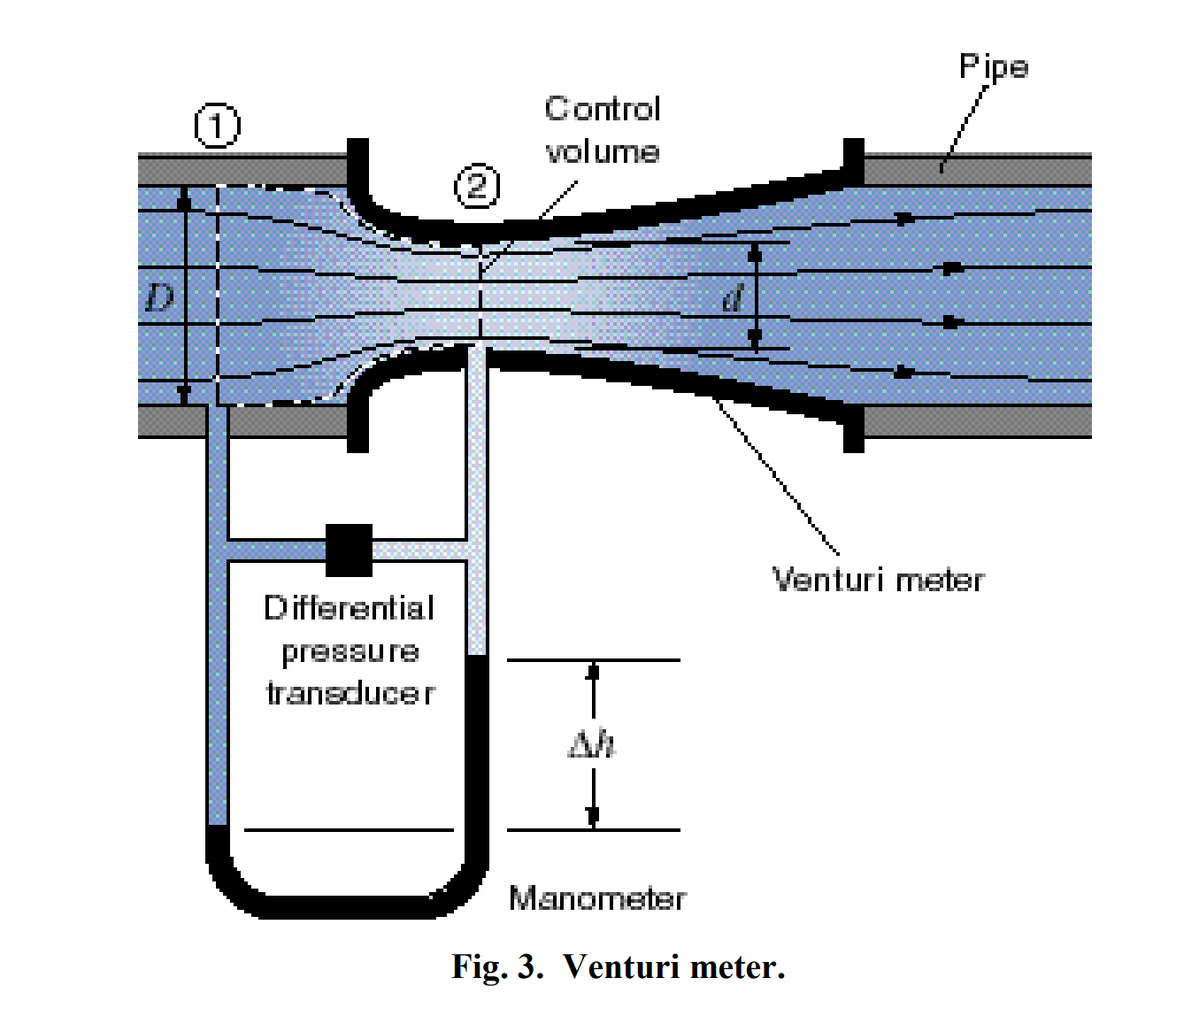 Calibration of the Manometer Differential Pressure Transducer